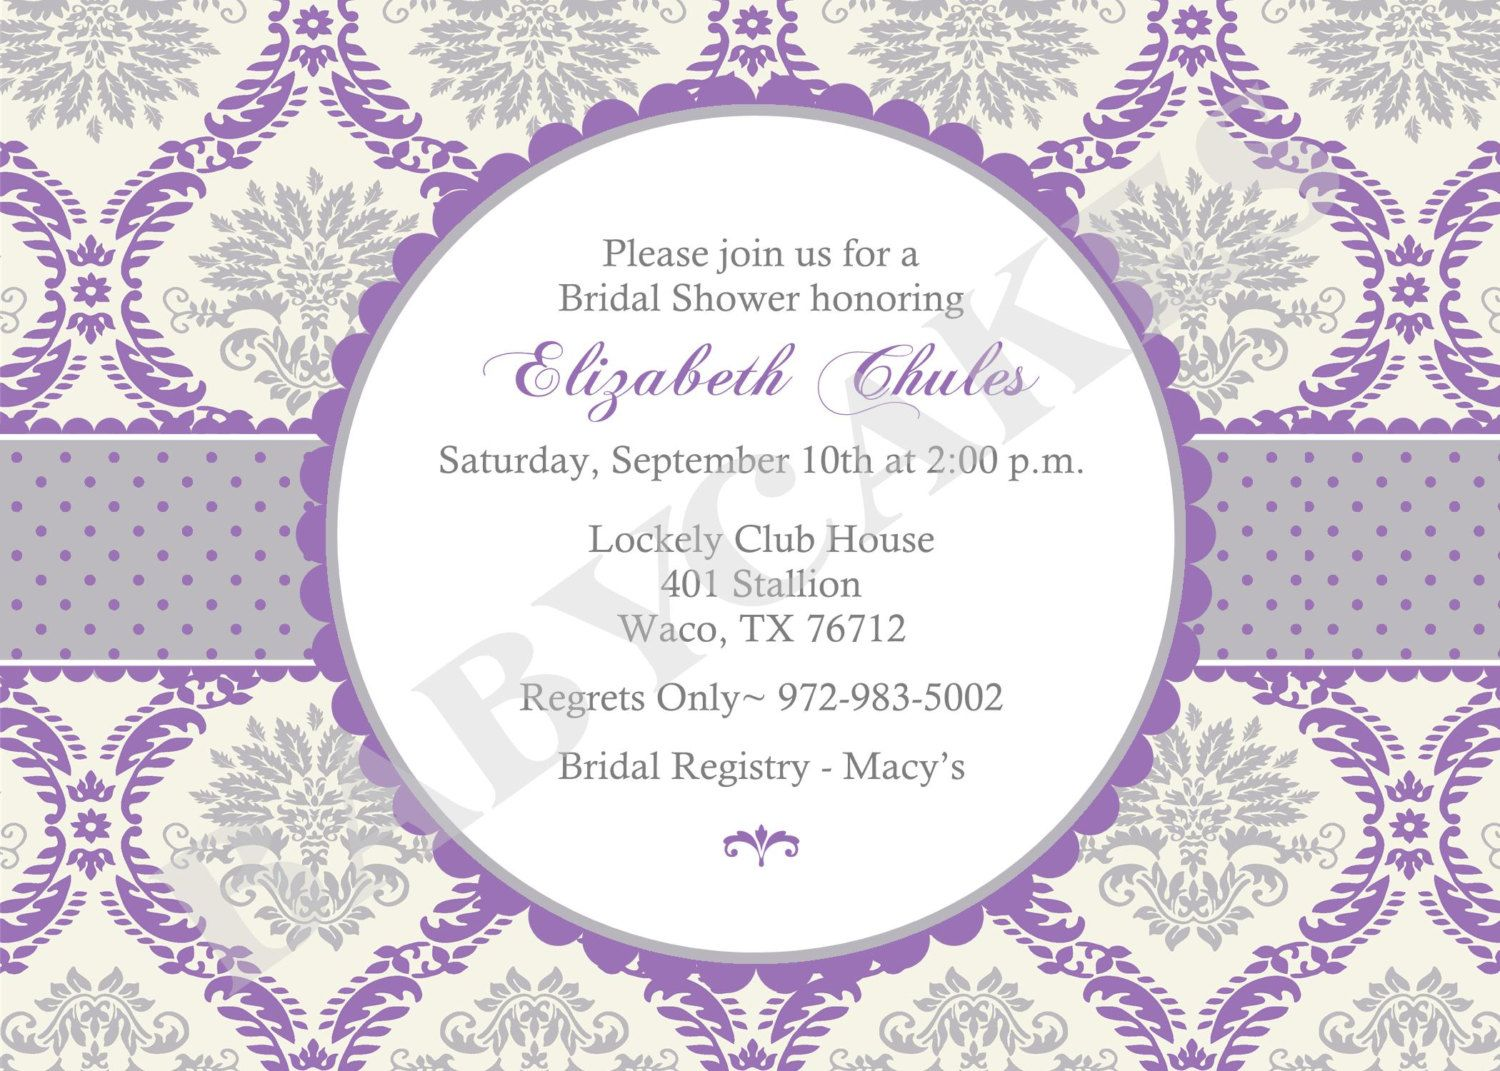 Print Your Own Wedding Shower Invitations